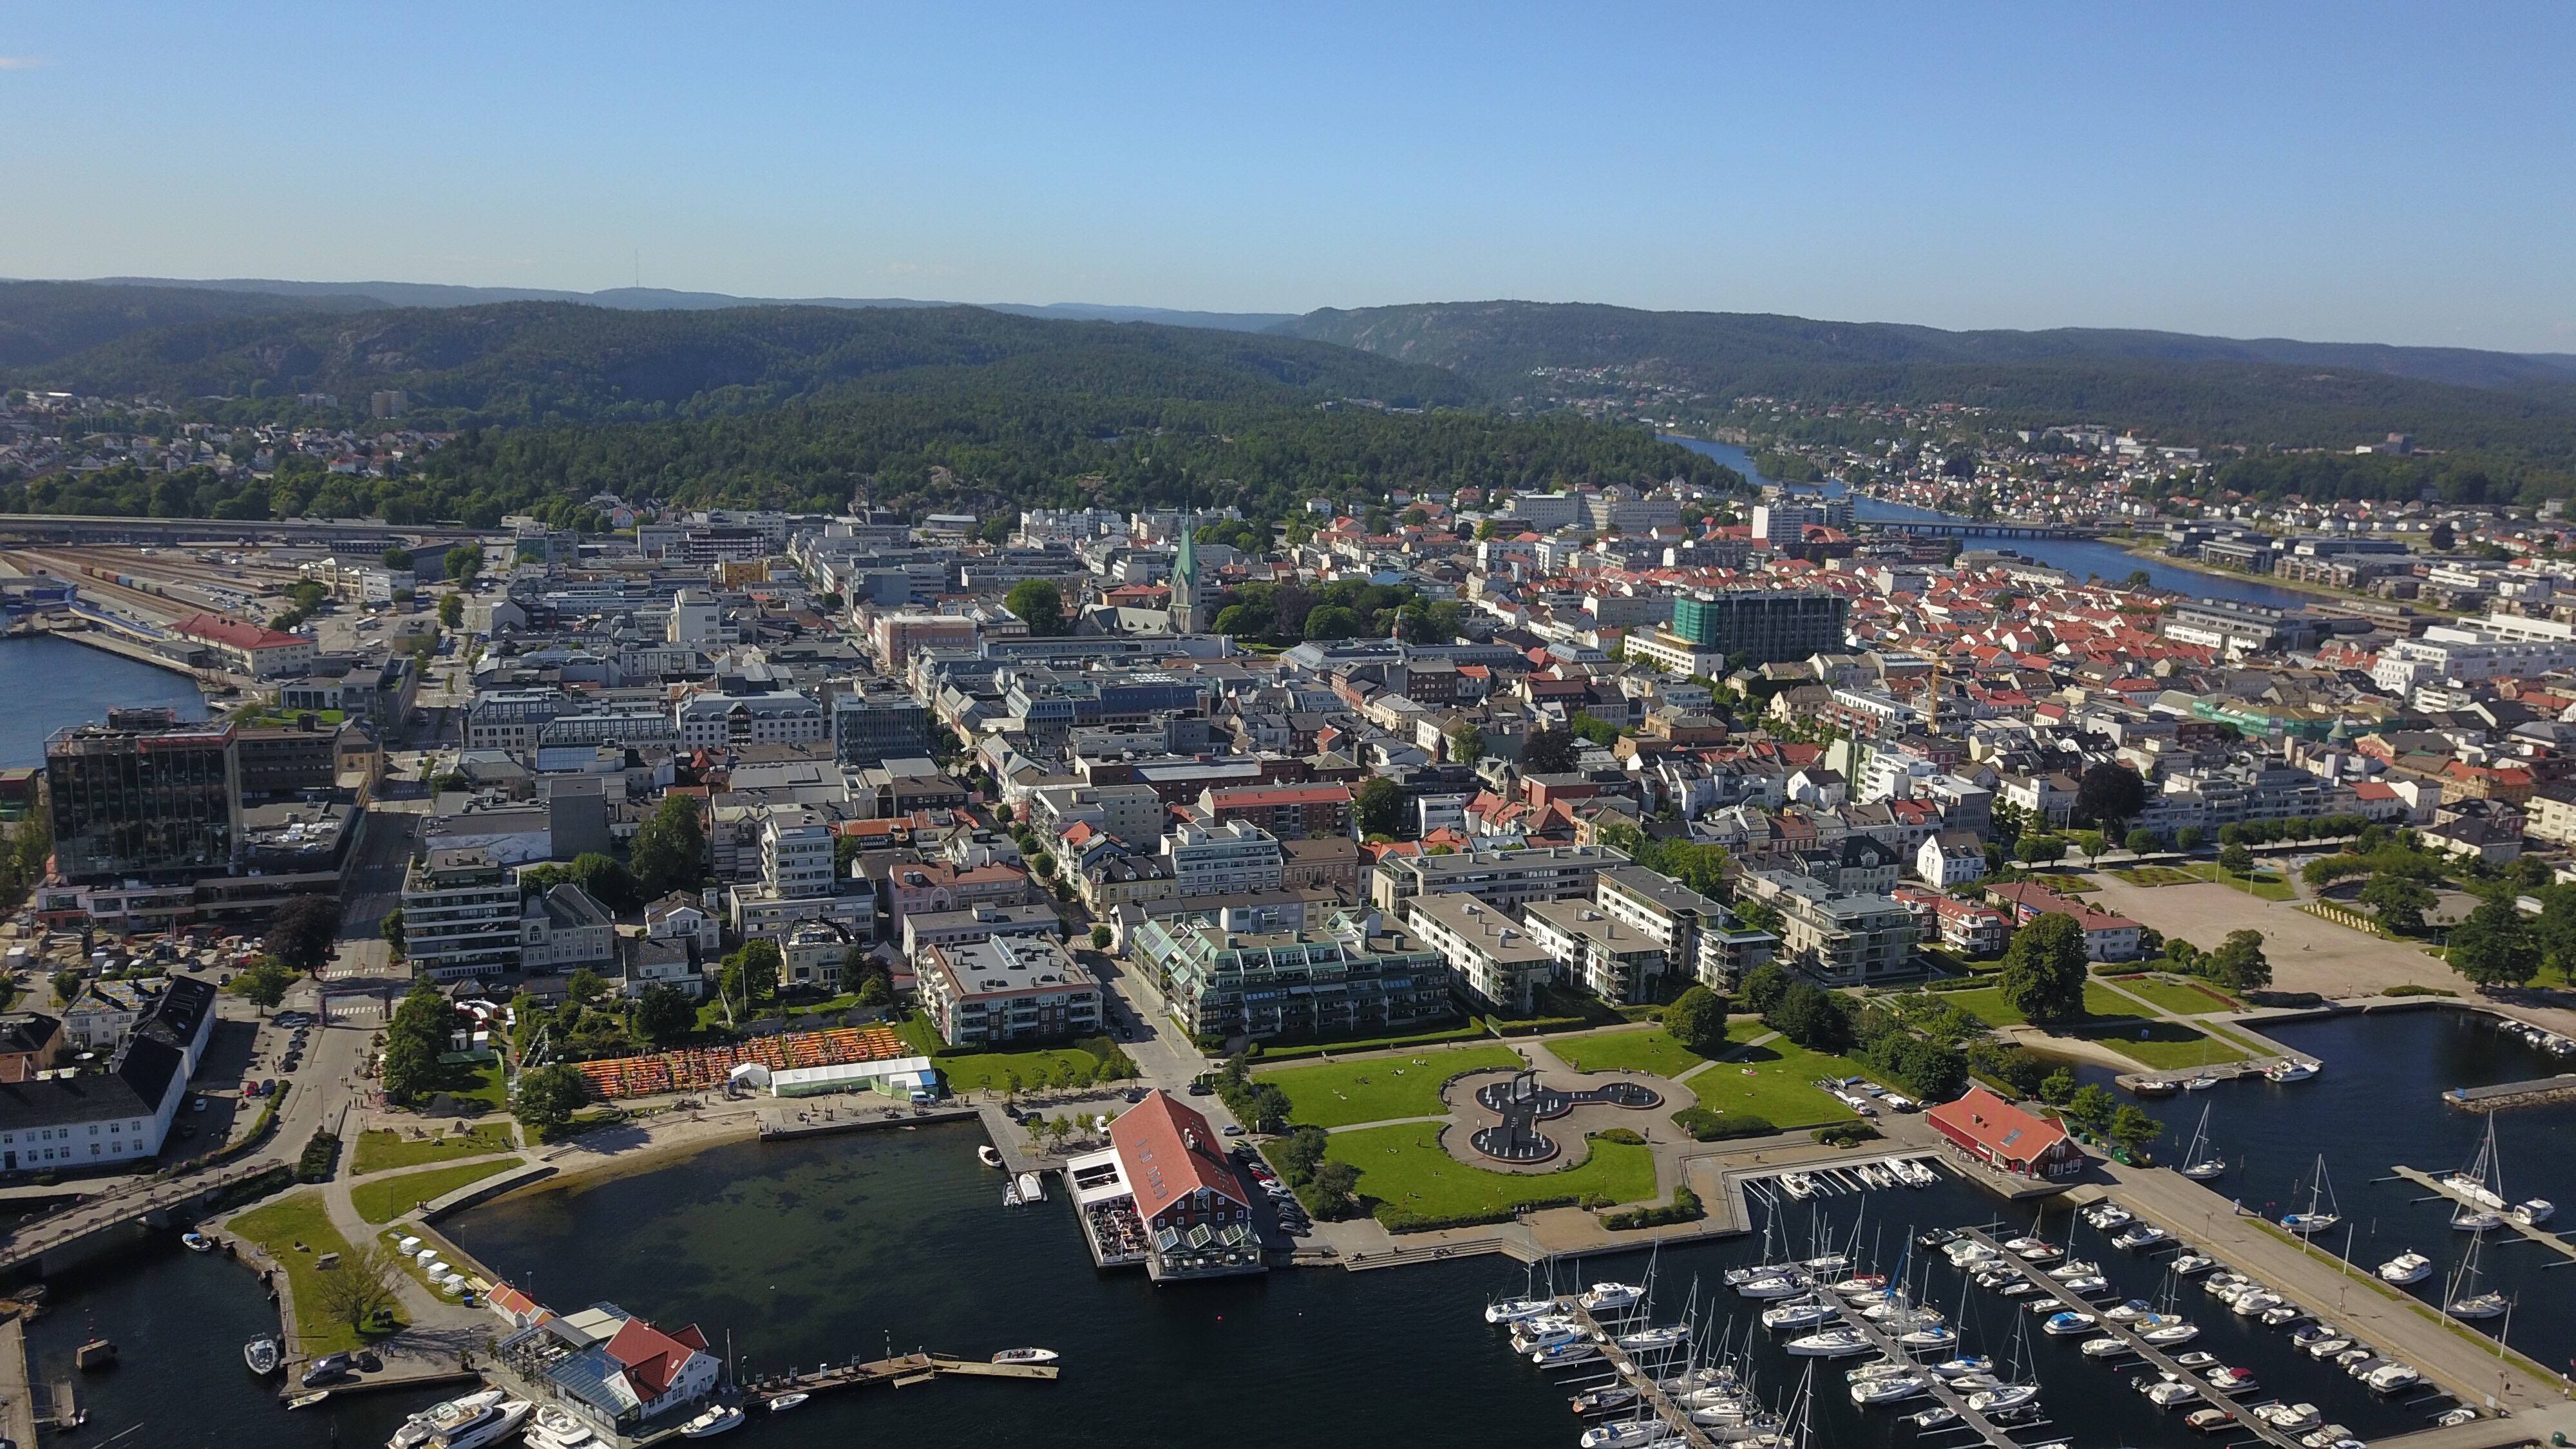 City of Kristiansand seen from above